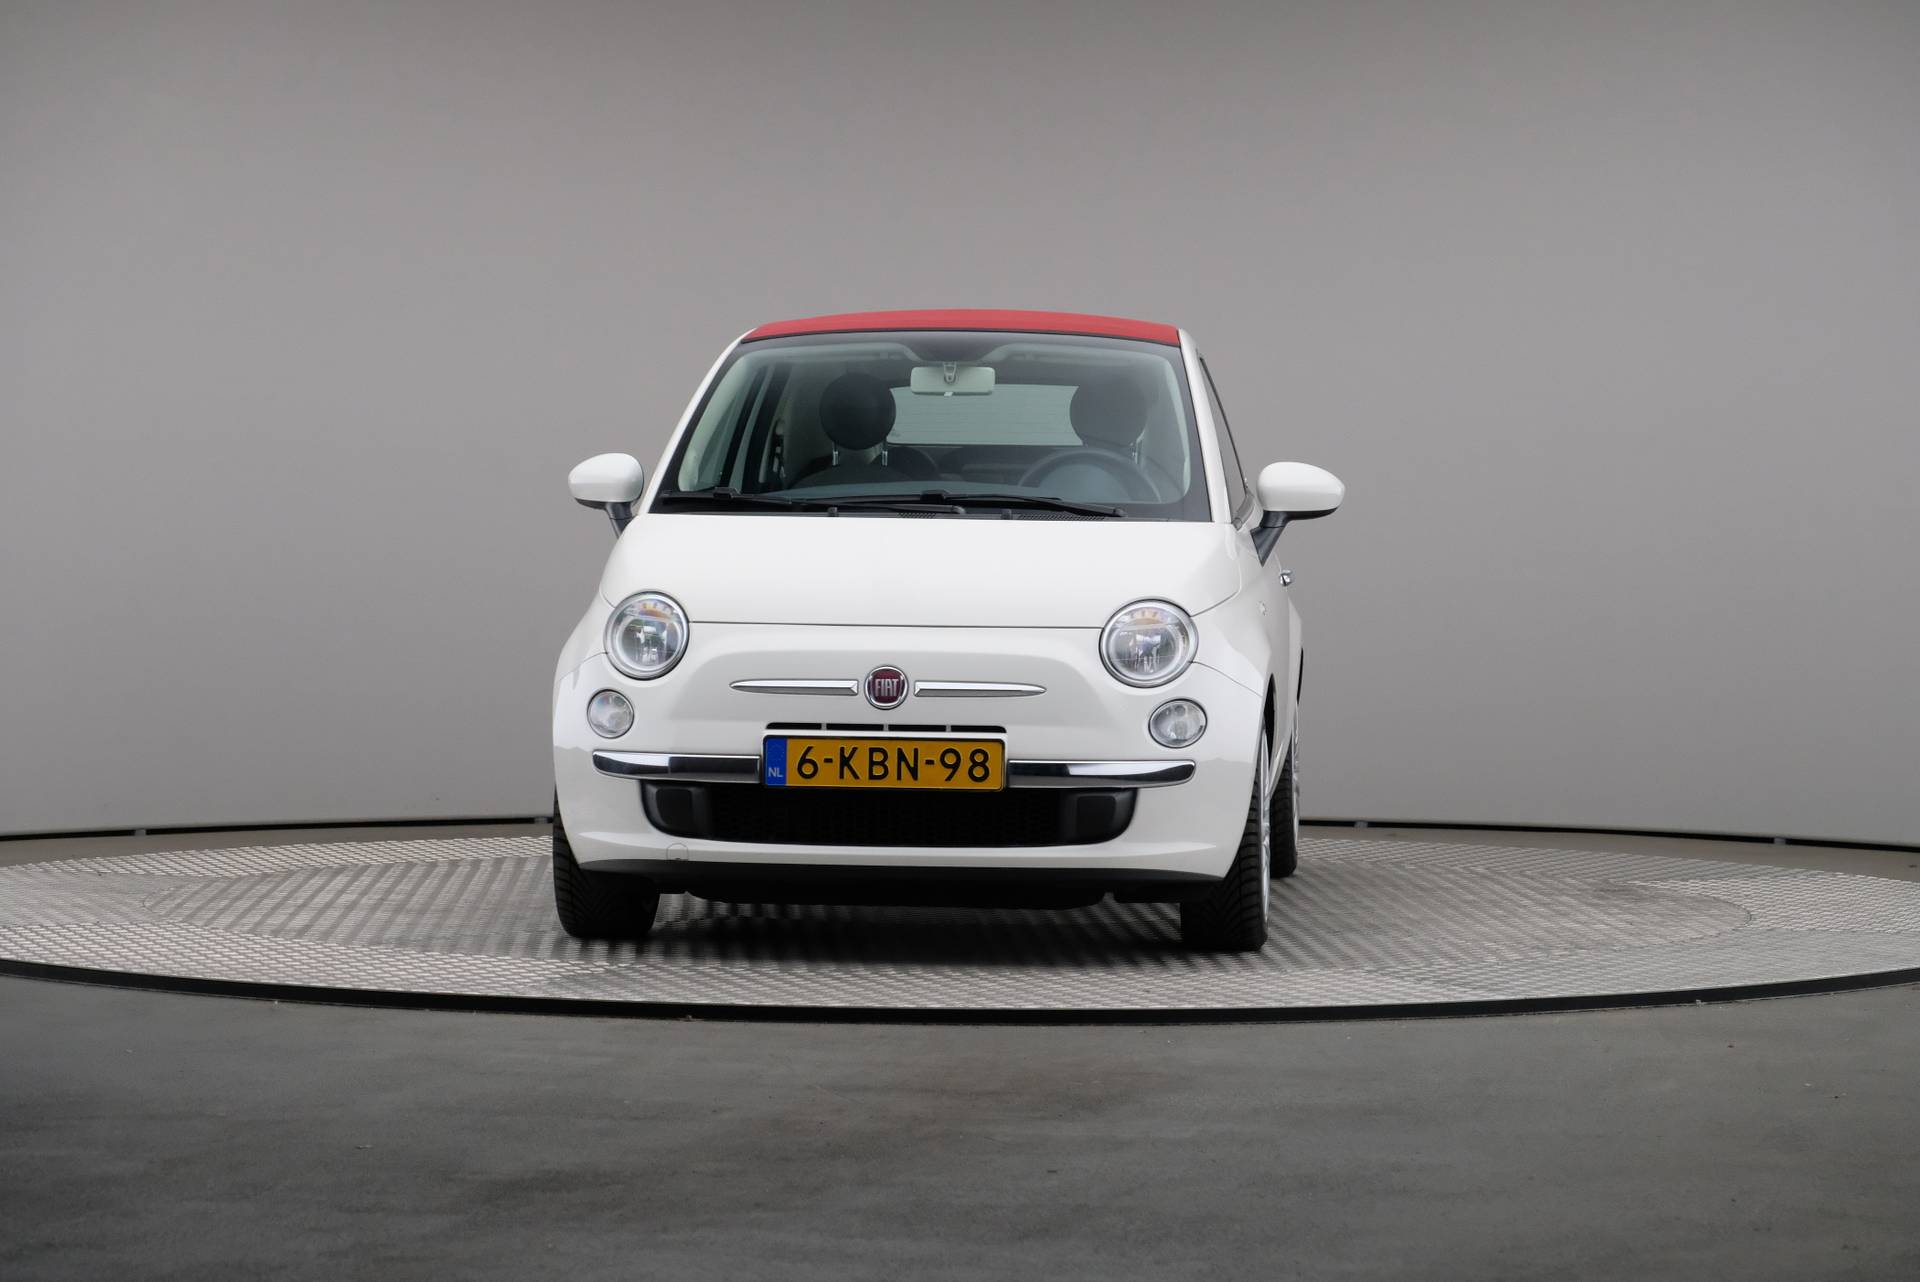 Fiat 500C TwinAir Turbo 85 Lounge, Airconditioning, 360-image33